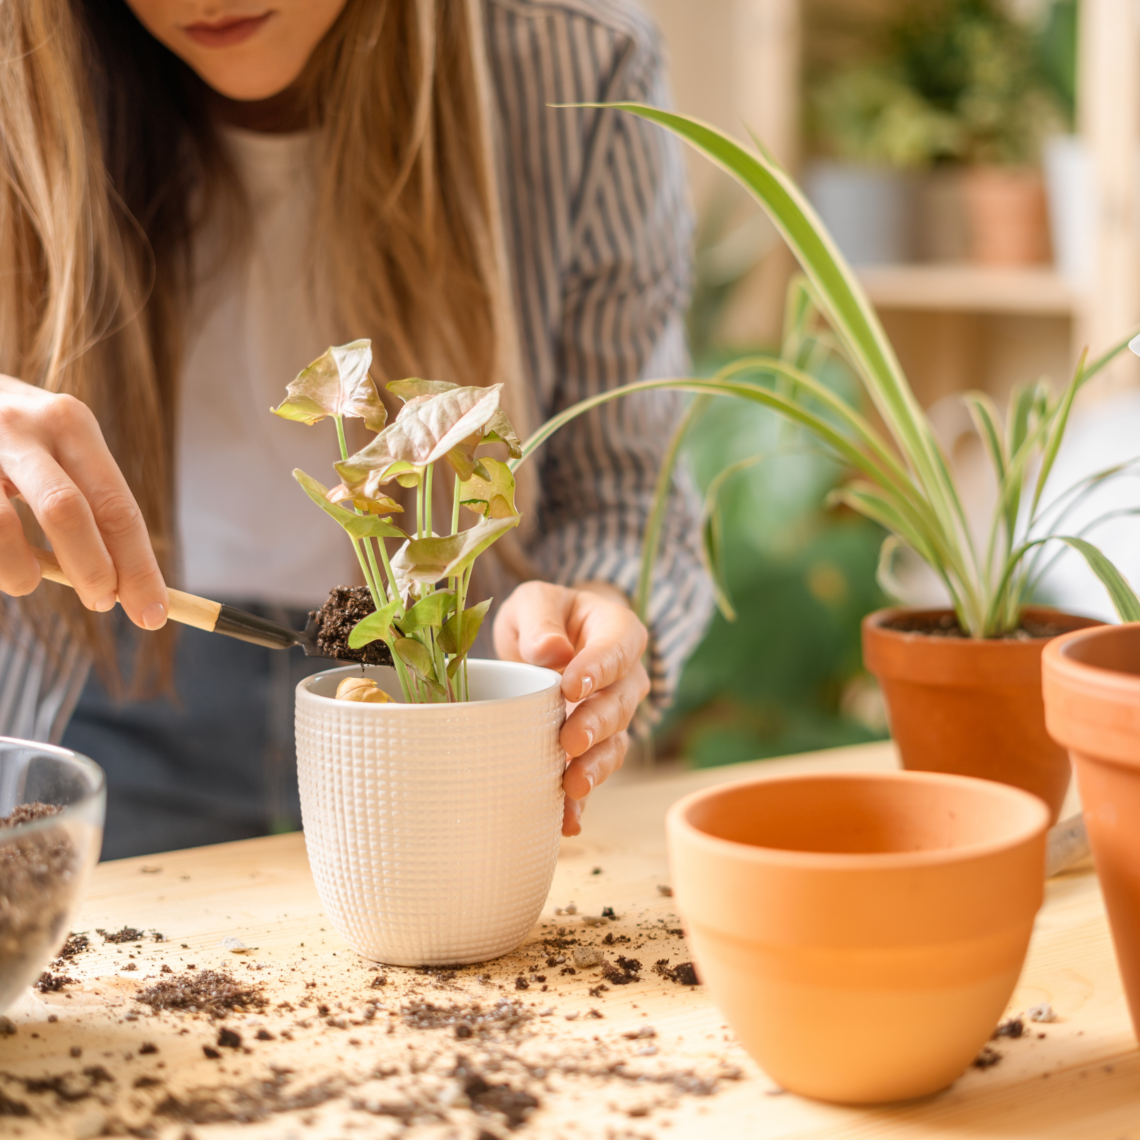 Martha Brook P.S. On The Blog 6 fantastic ways to connect with nature for mental health awareness week gardening plants flowers